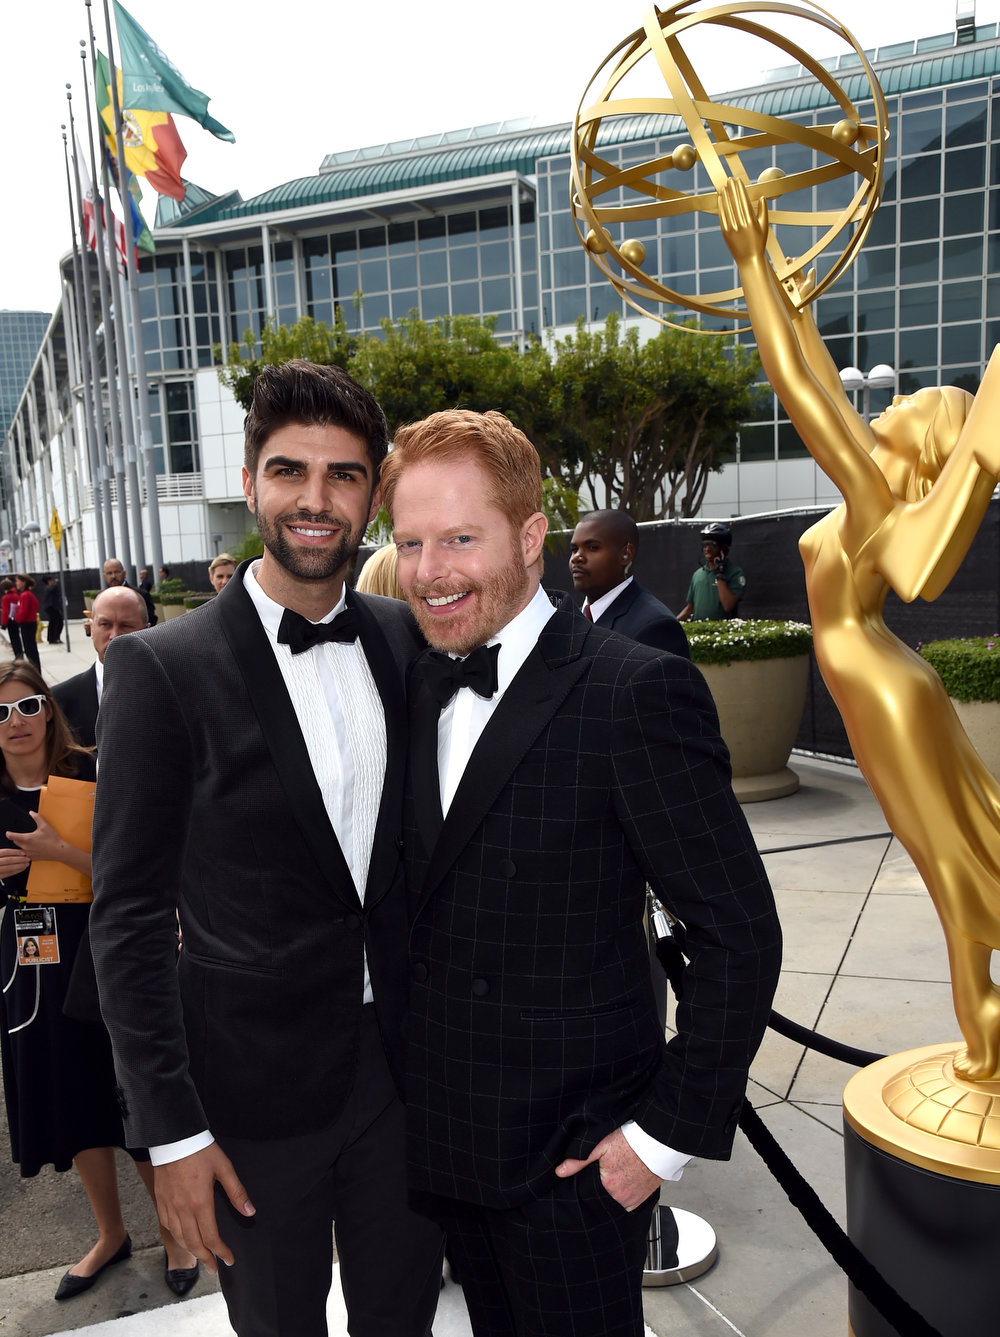 . Justin Mikita (L) and actor Jesse Tyler Ferguson attend the 66th Annual Primetime Emmy Awards held at Nokia Theatre L.A. Live on August 25, 2014 in Los Angeles, California.  (Photo by Michael Buckner/Getty Images)